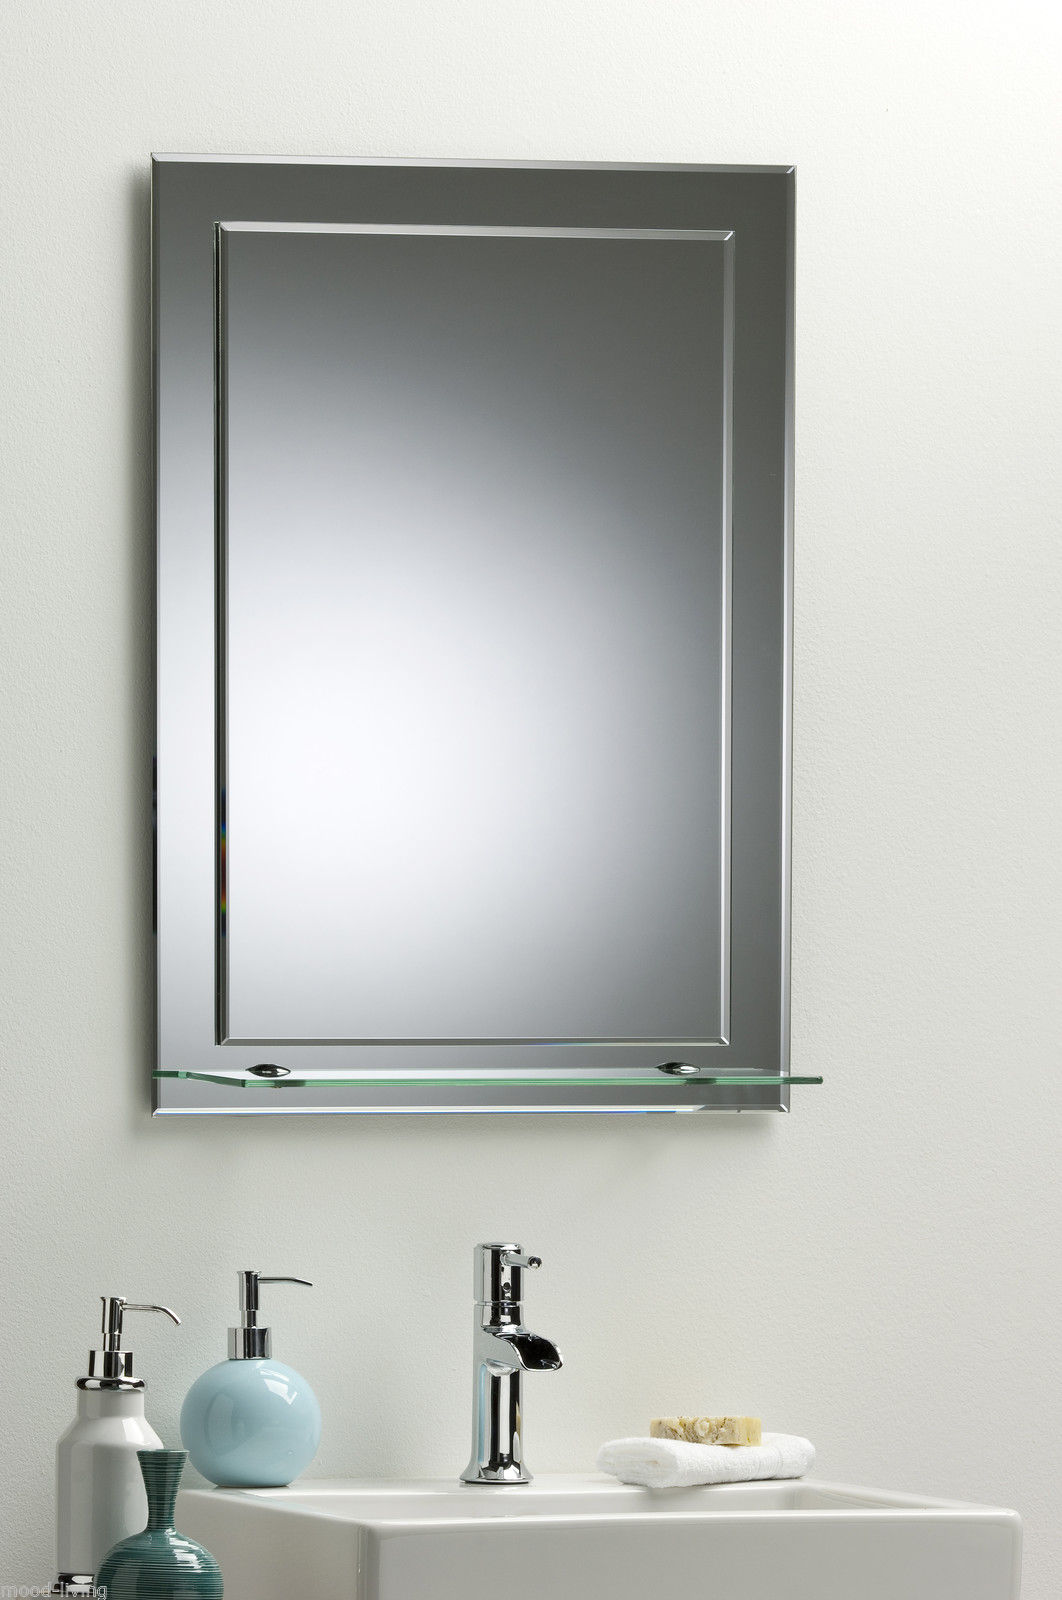 Bathroom wall mounted mirrors